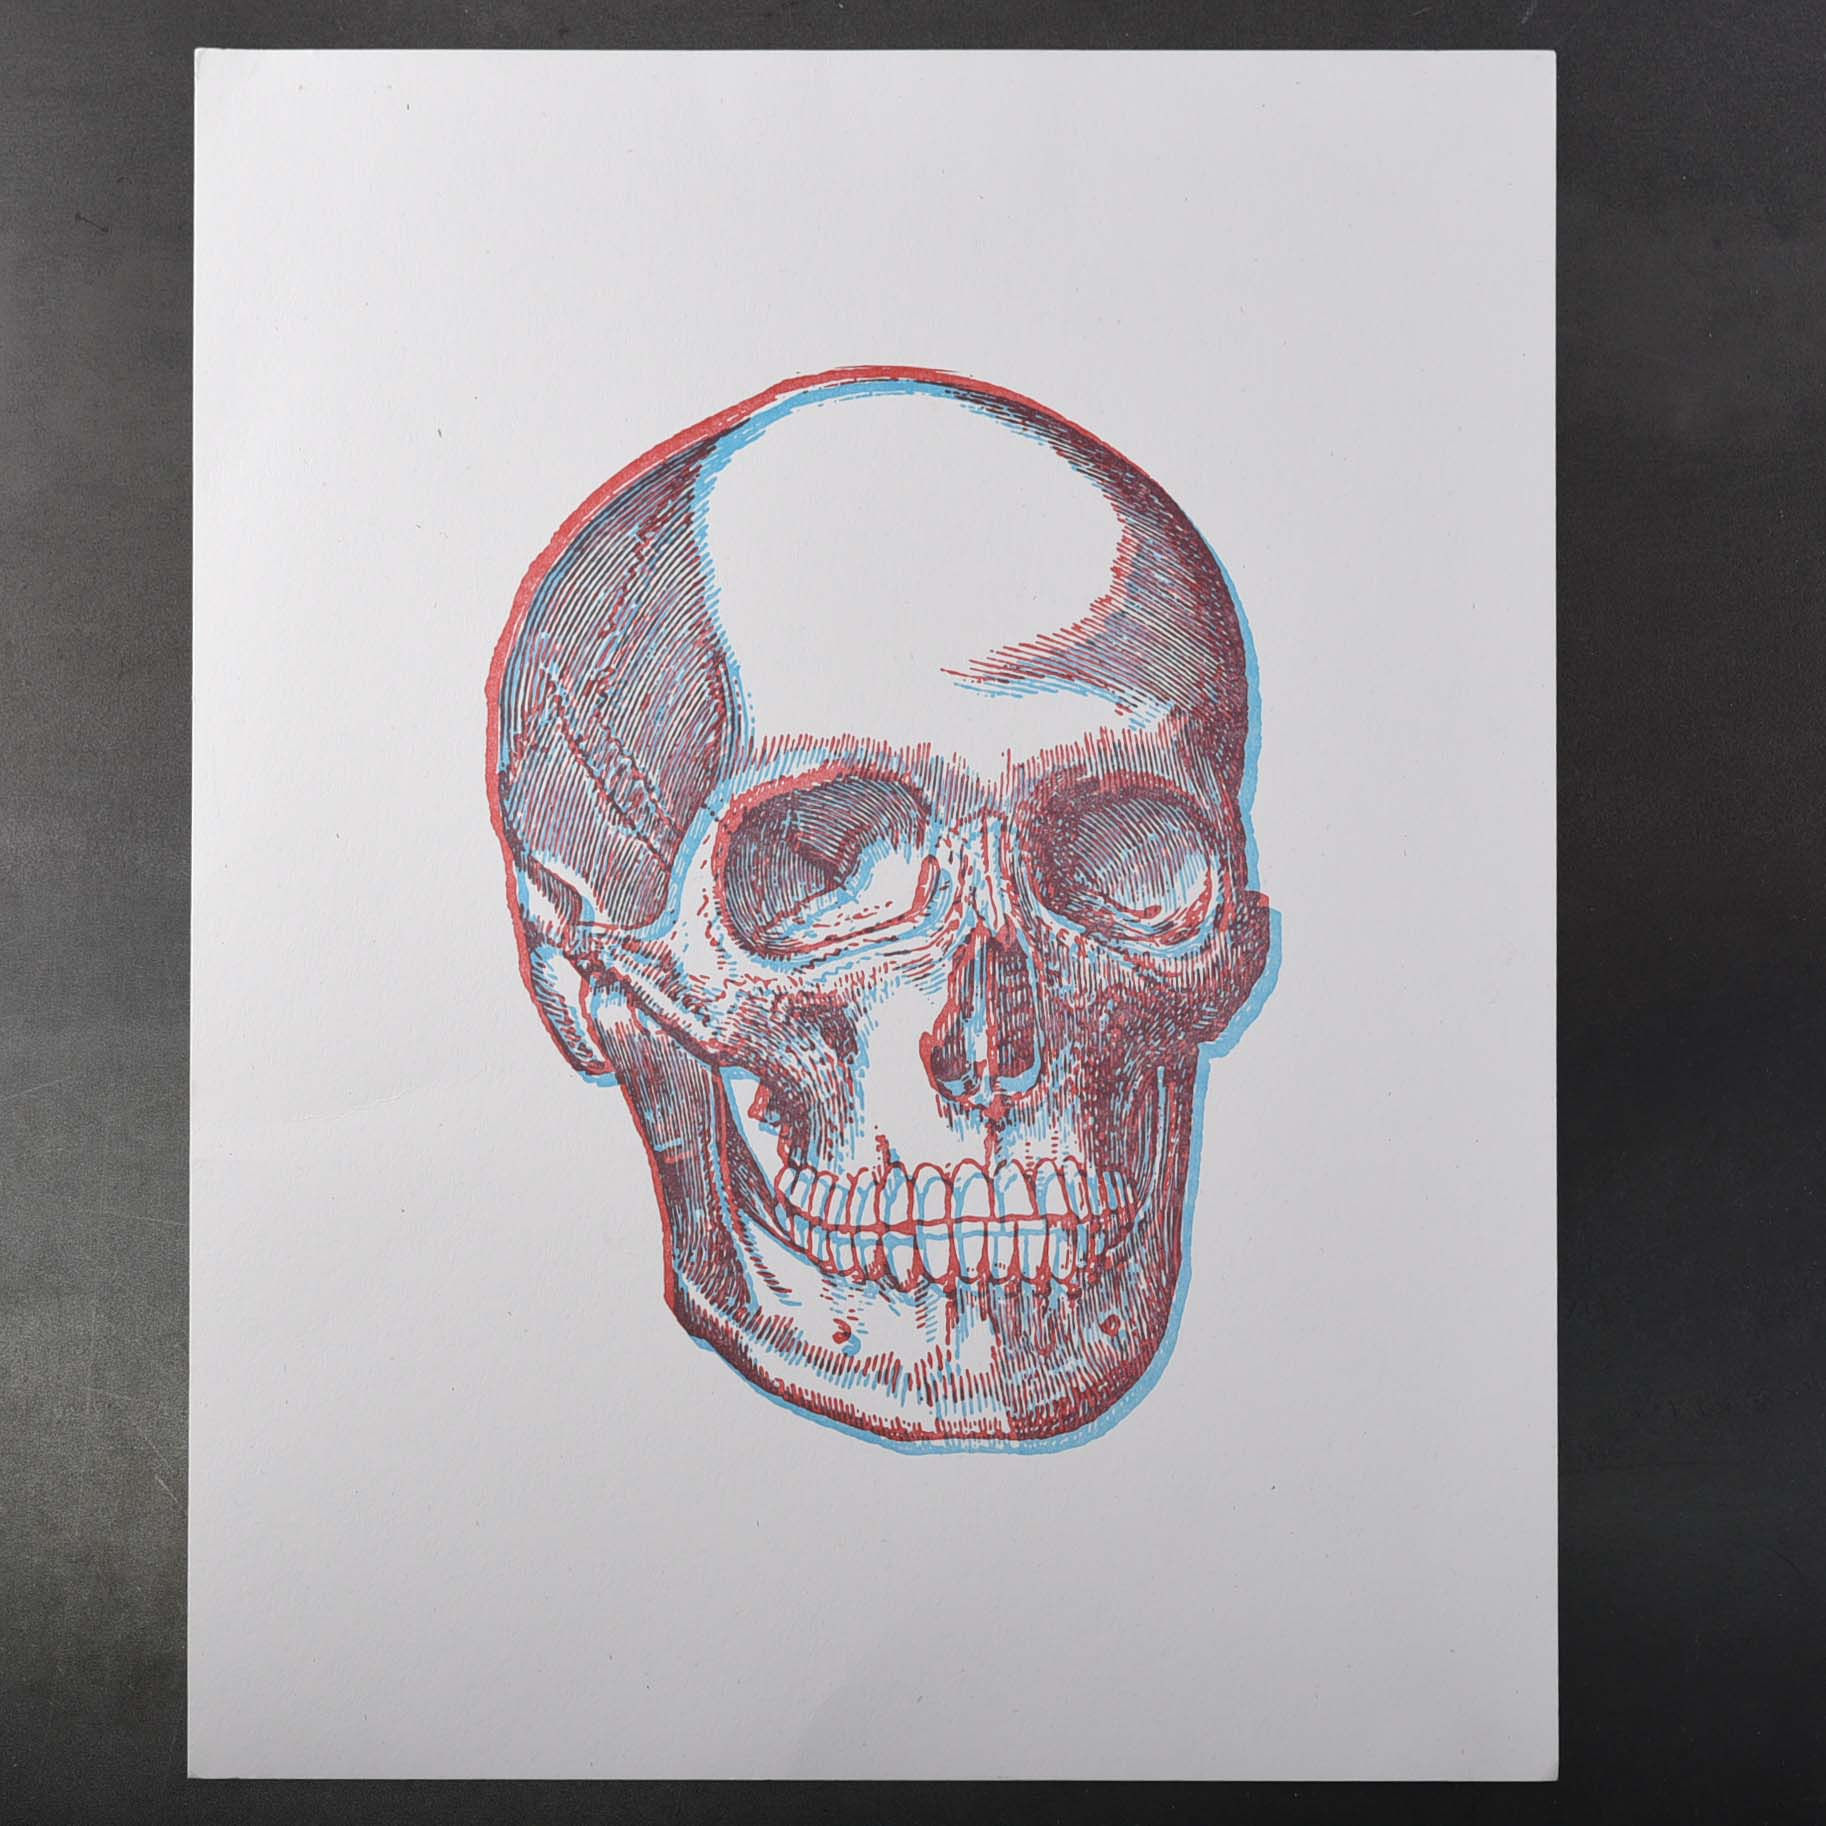 skull overprint wide shot blue and red